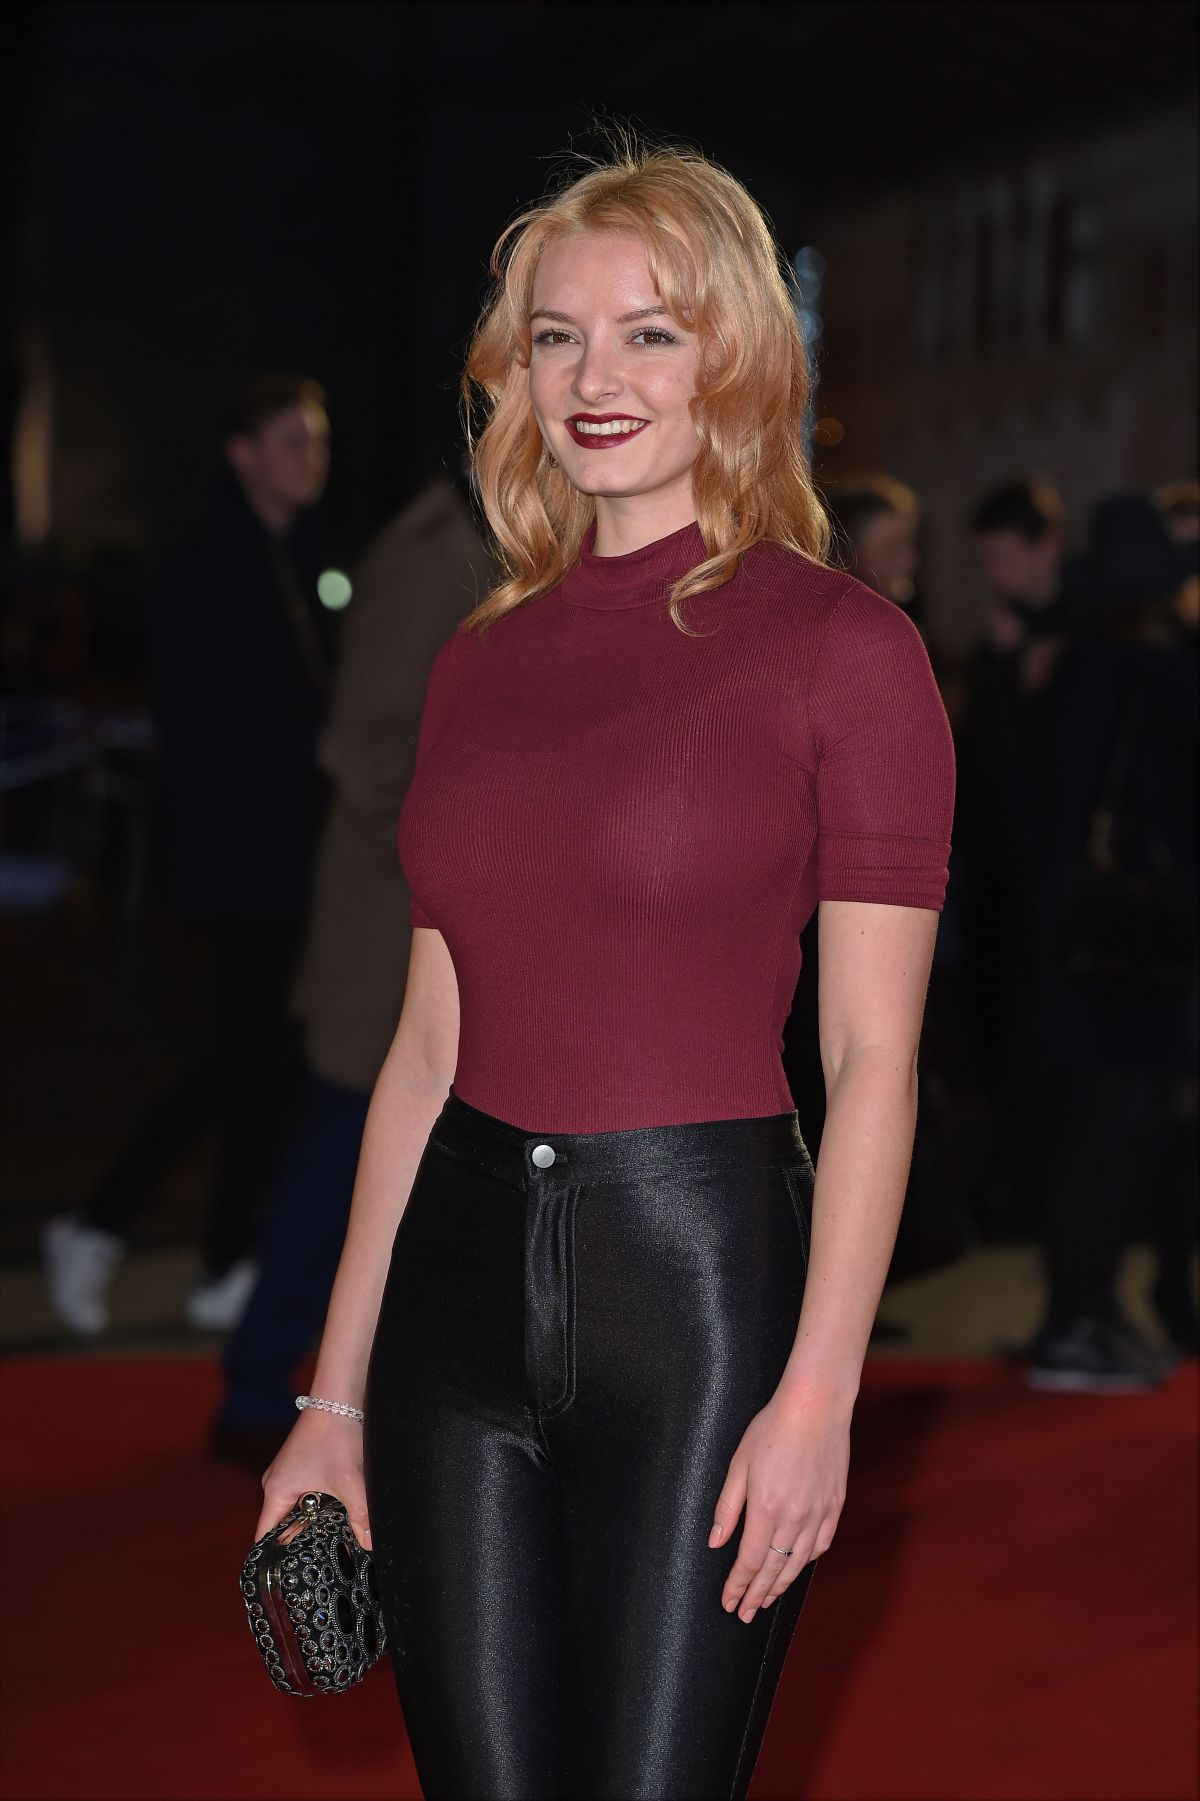 DAKOTA BLUE RICHARDS at The Danish Girl Premiere in London 12/08/2015